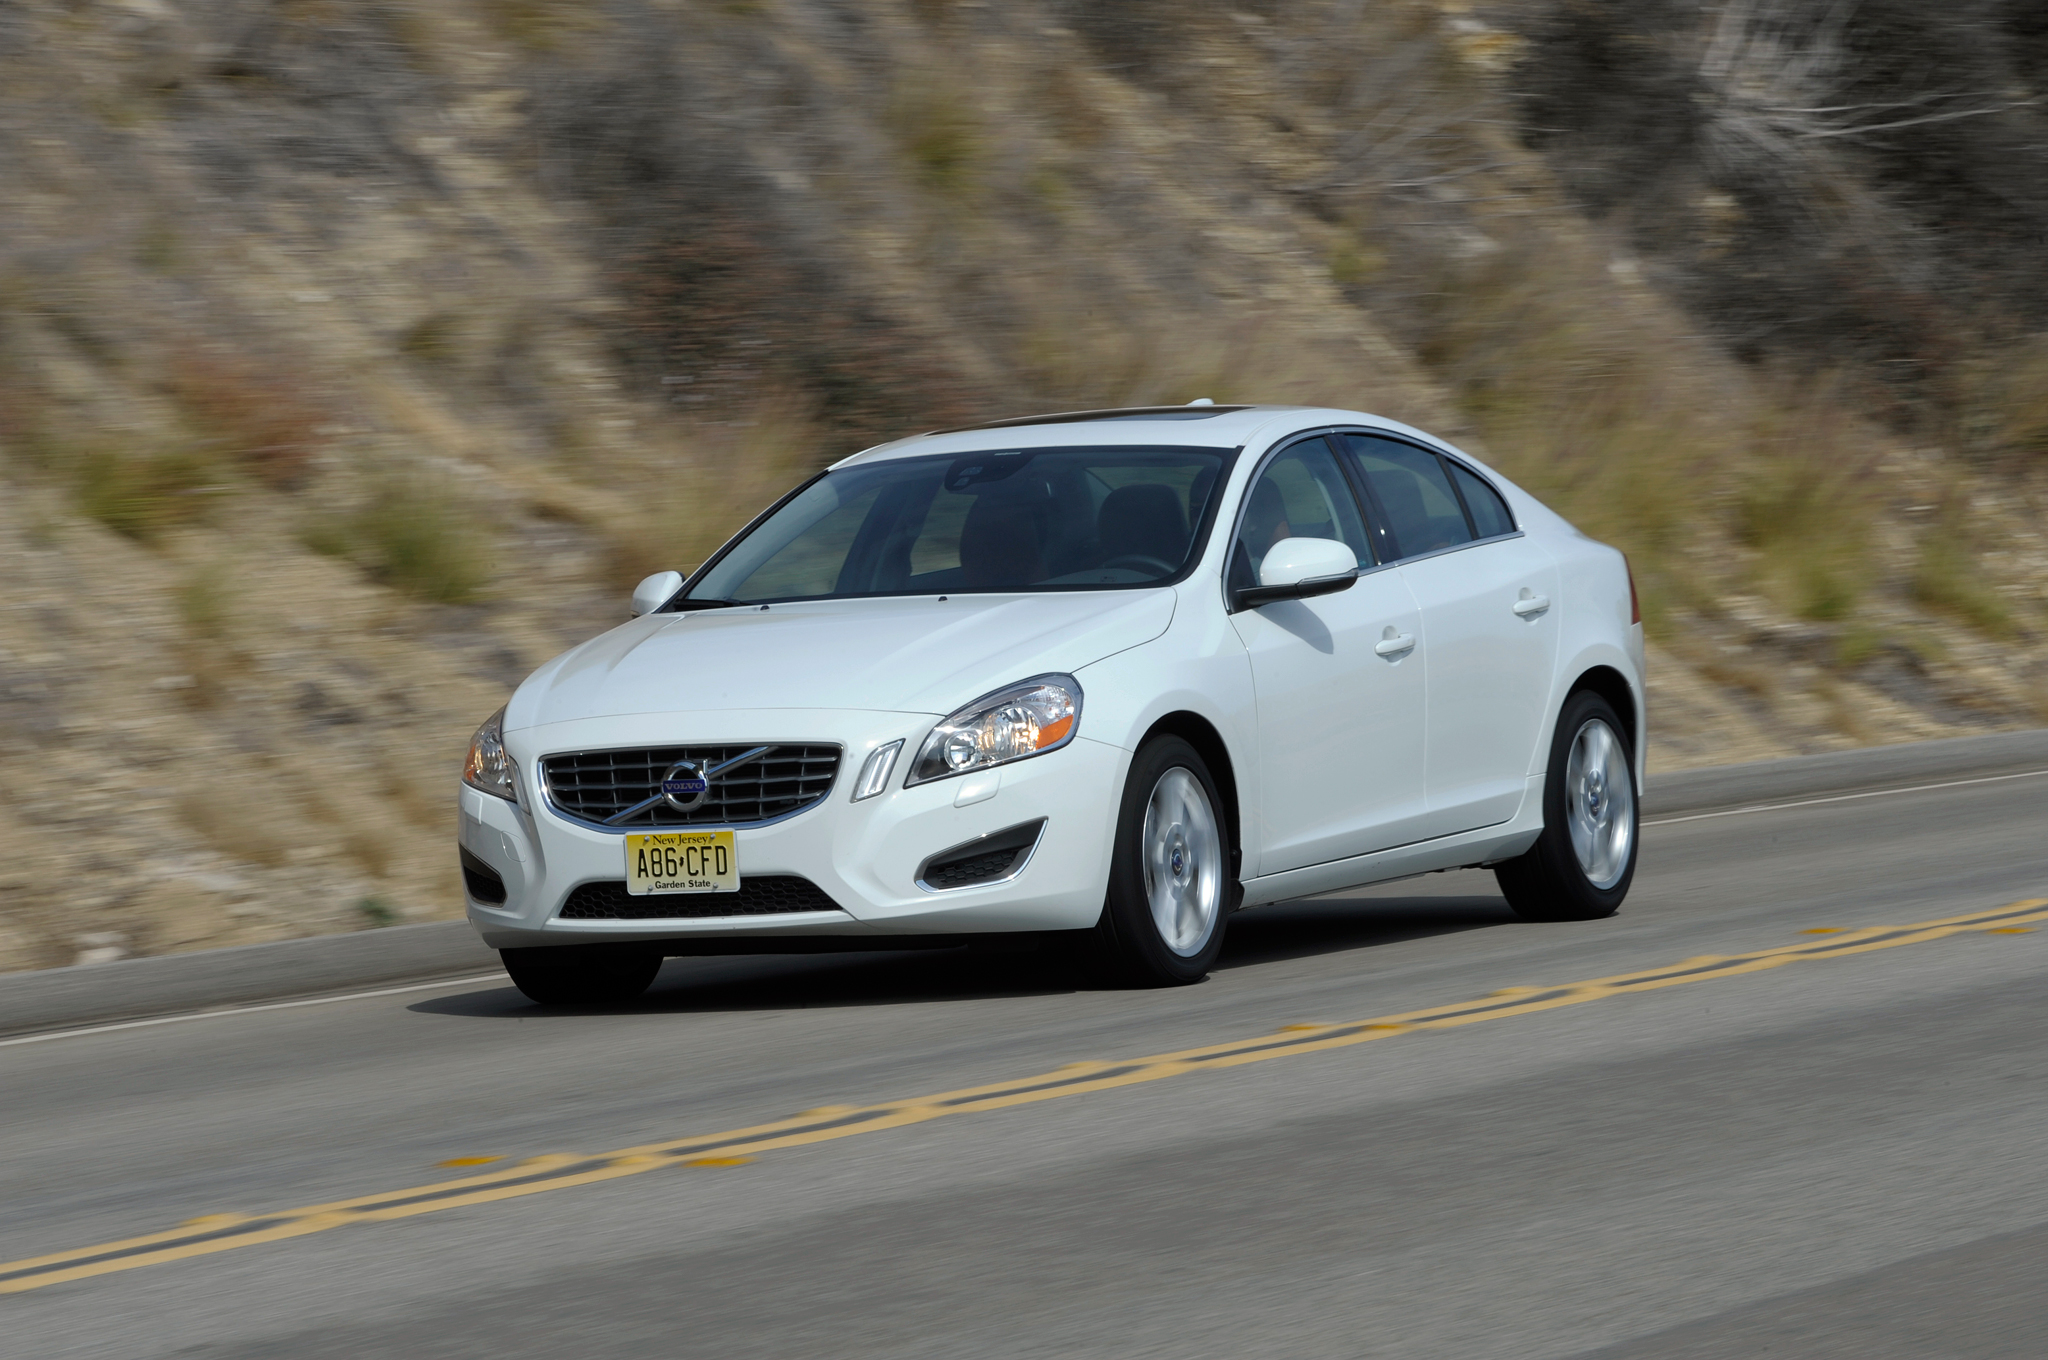 2013 Volvo S60 T5 AWD Long-Term Update 4